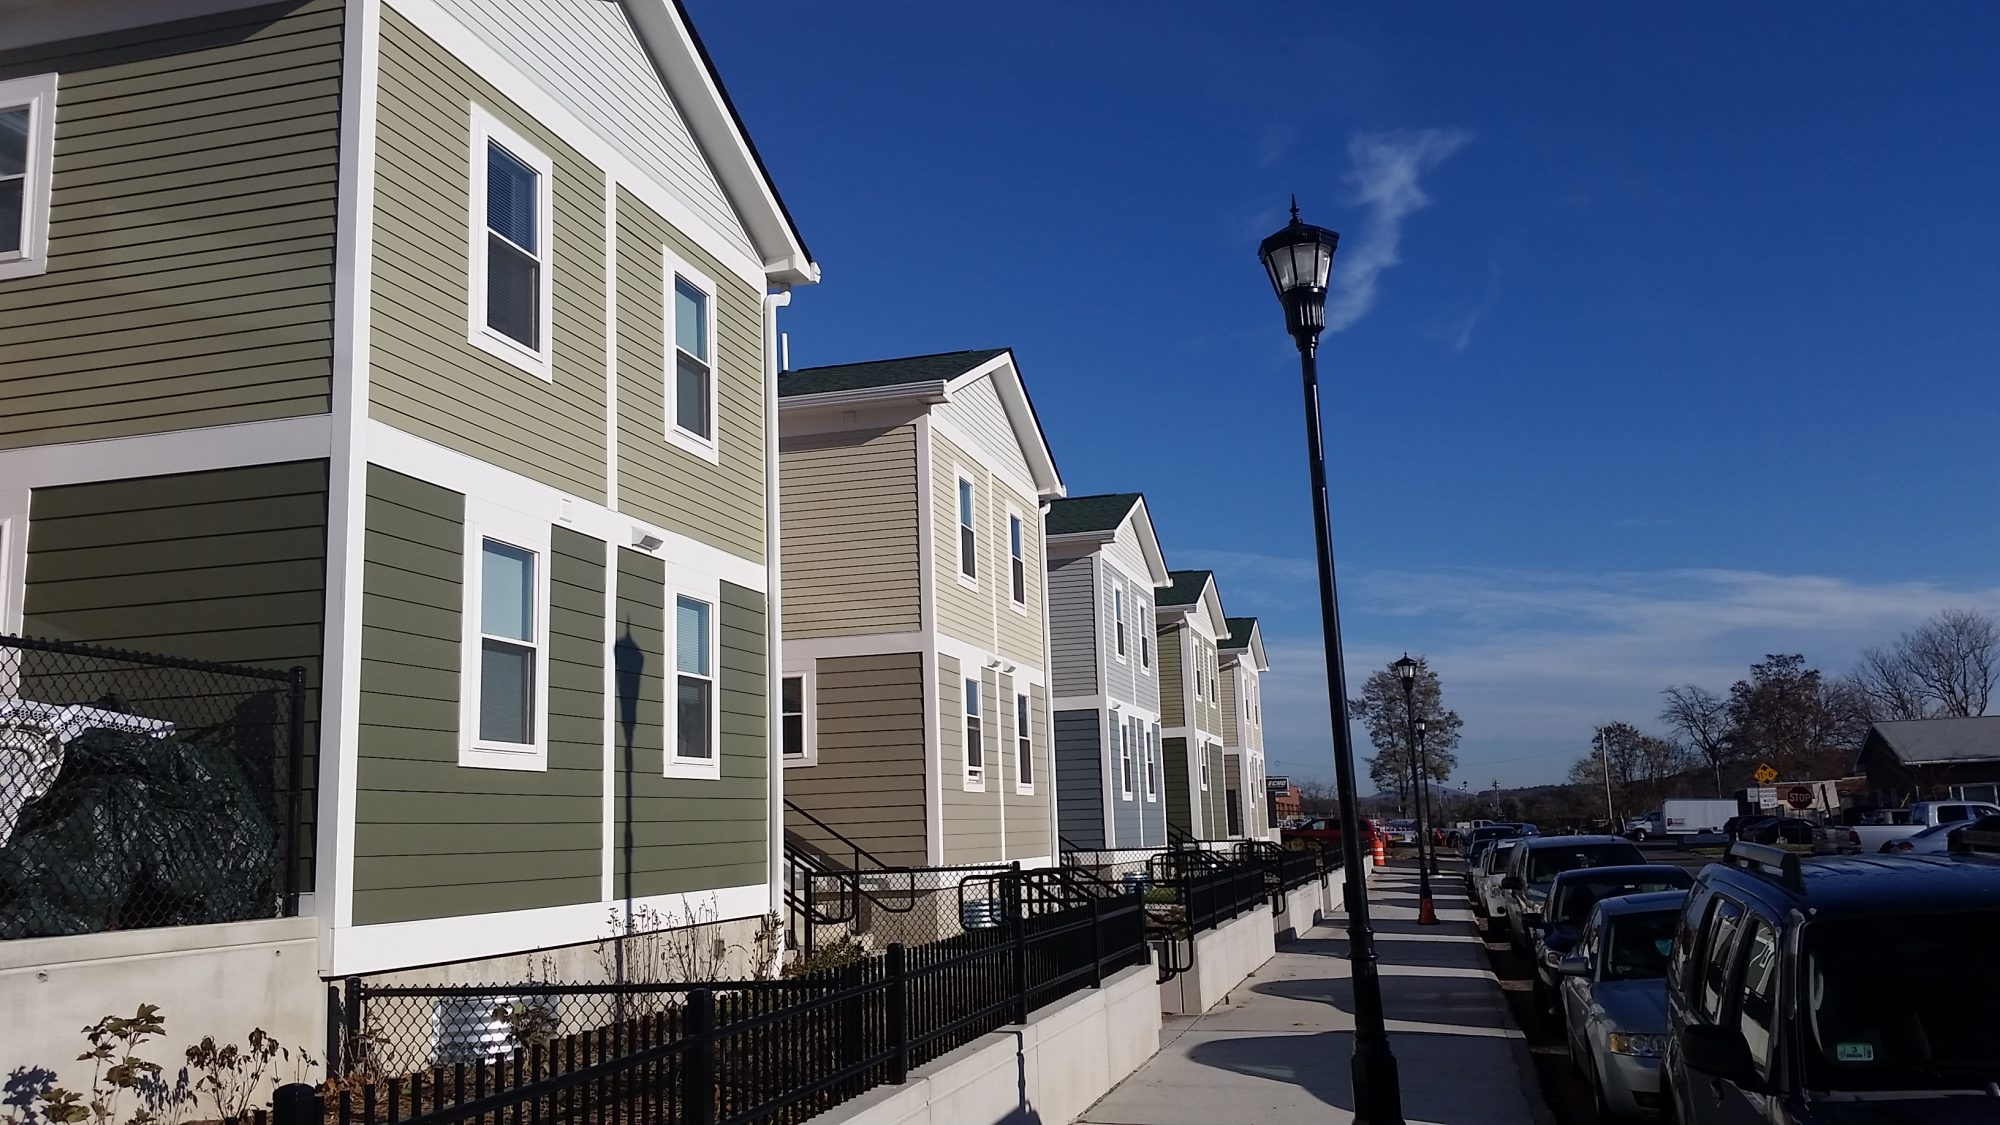 Eastern General Contractors builds the Lyman Terrace housing in Holyoke, MA